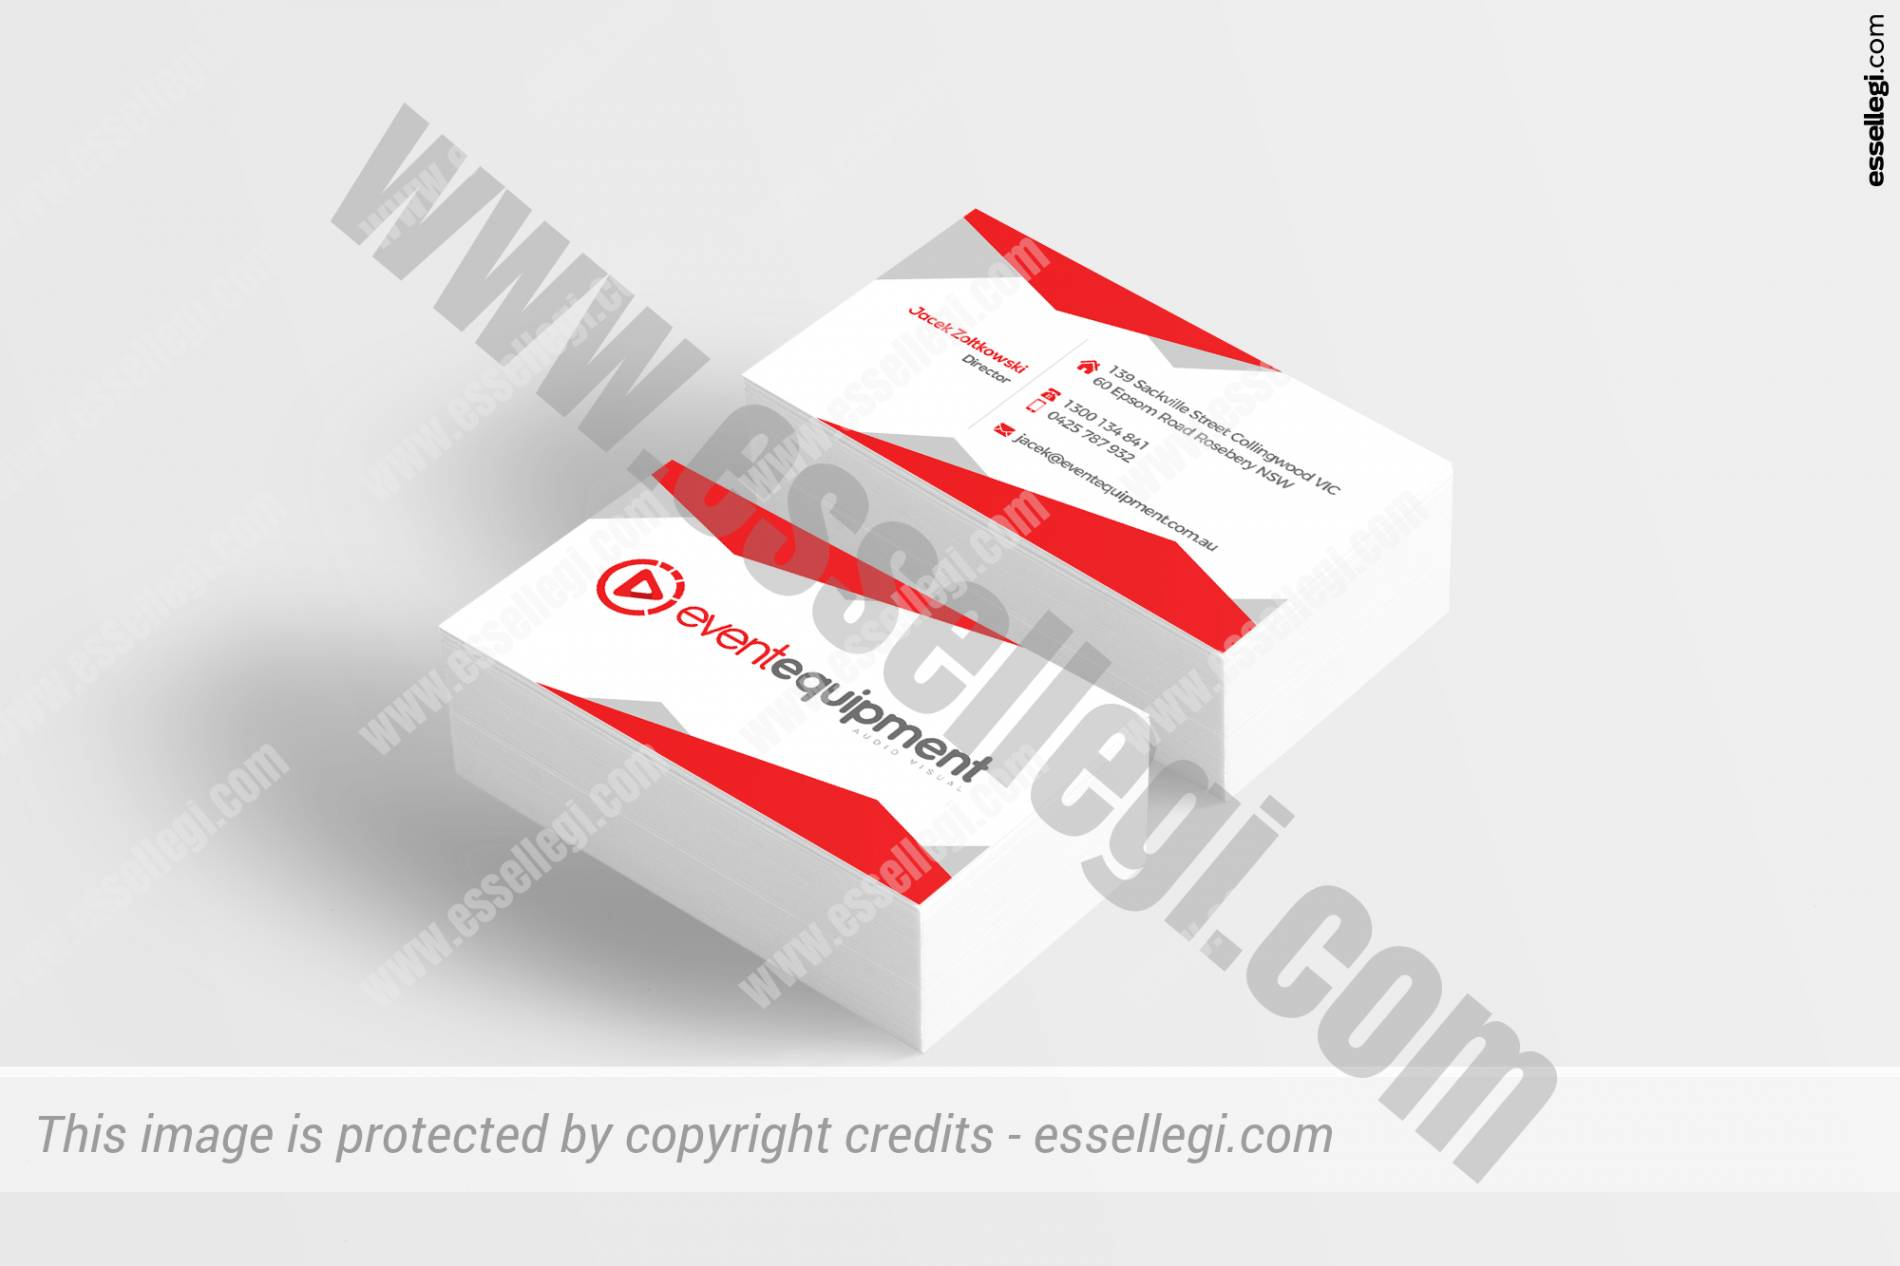 Business Card Design. Event Equipment Audio Visual Events Brand Identity Design by Essellegi Design